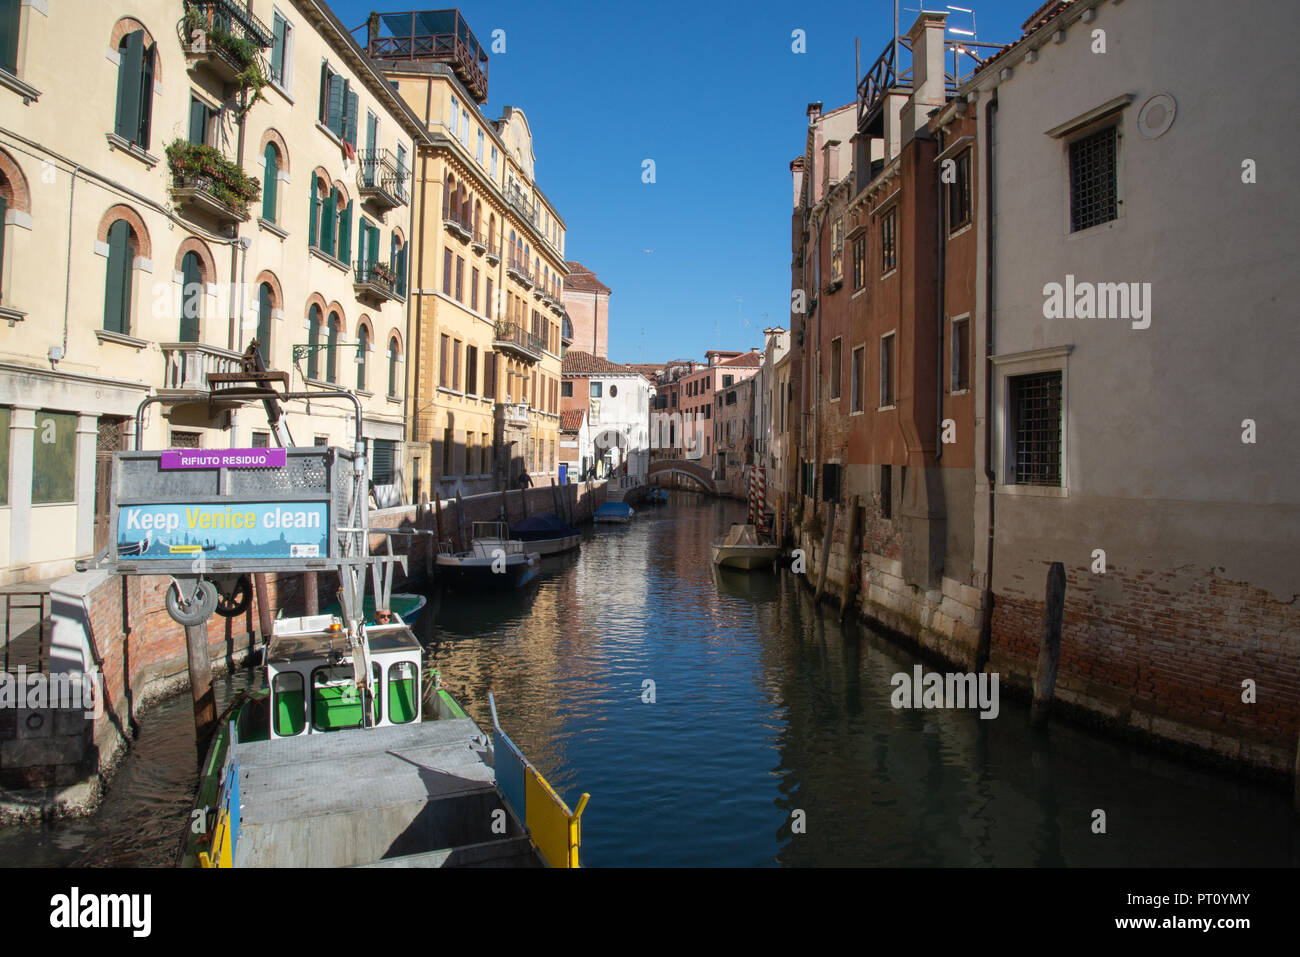 Rubbish collection day in Venice - Stock Image